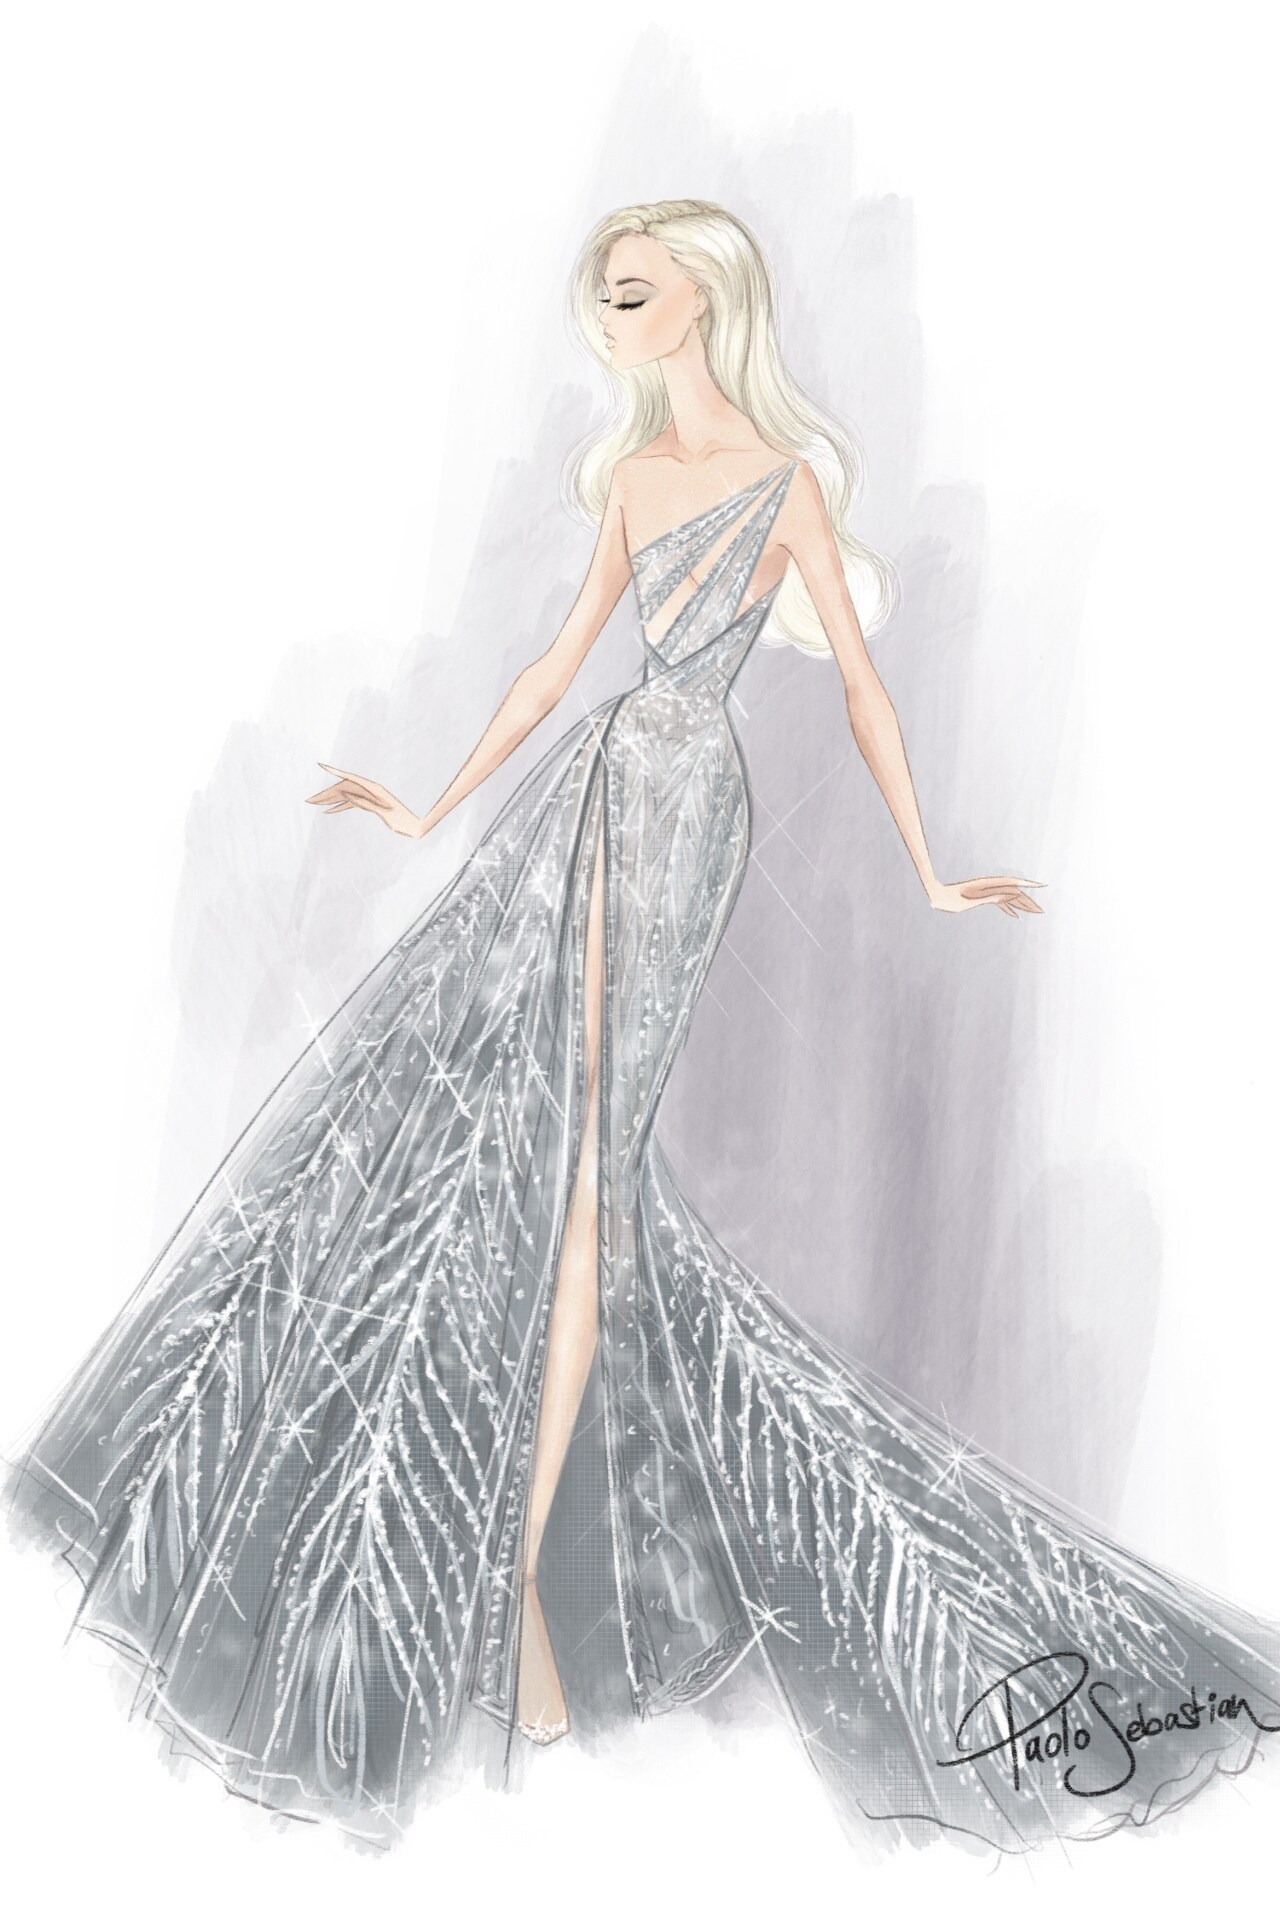 The sketch of Poppy Delevingne's Paul Vasileff-designed Paolo Sebastian gown. Image credit: supplied